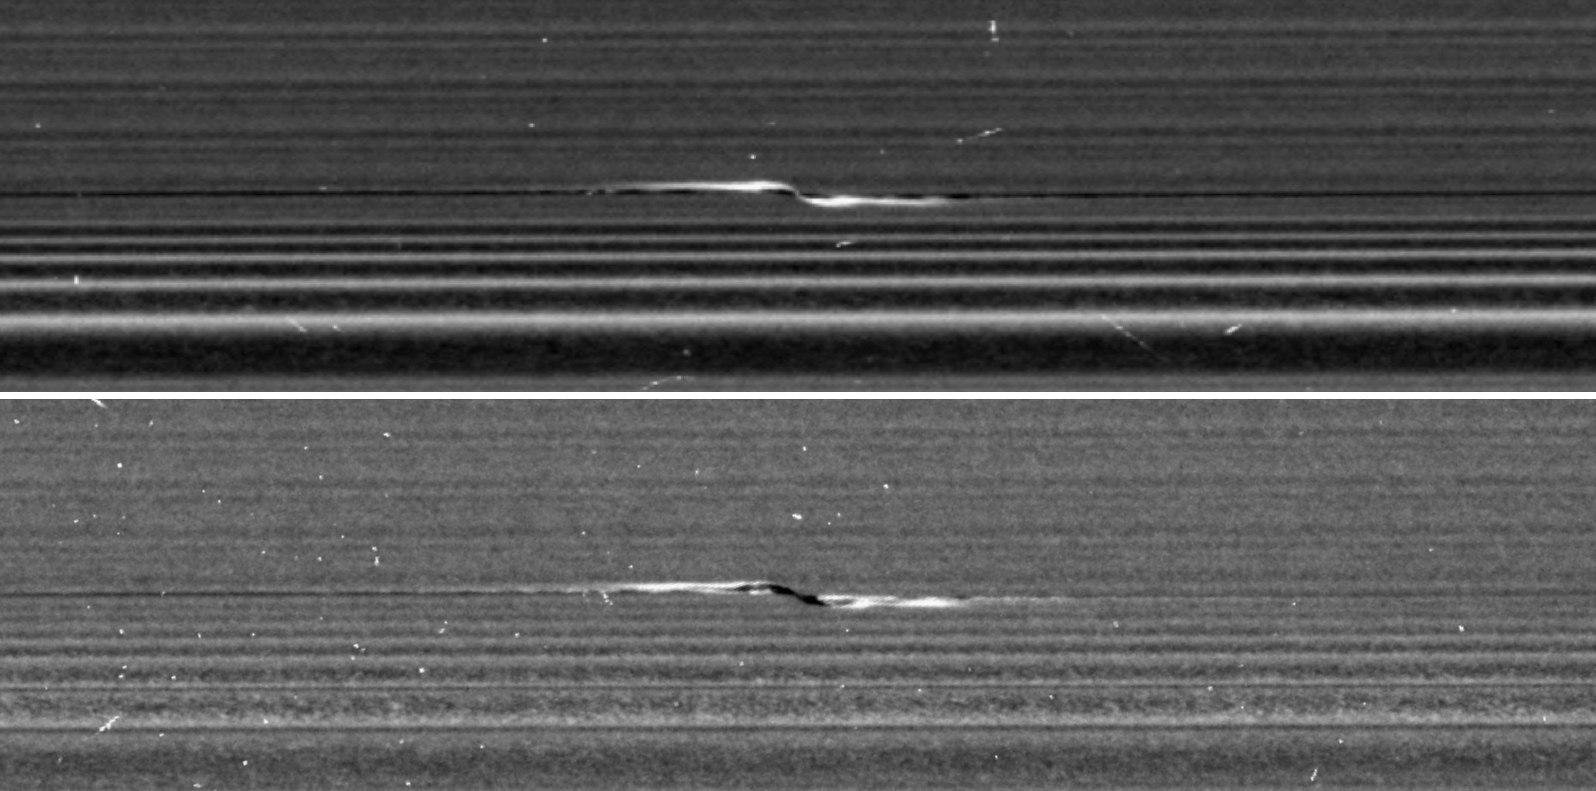 Cassini Science Ring Propellors The Solstice Blog